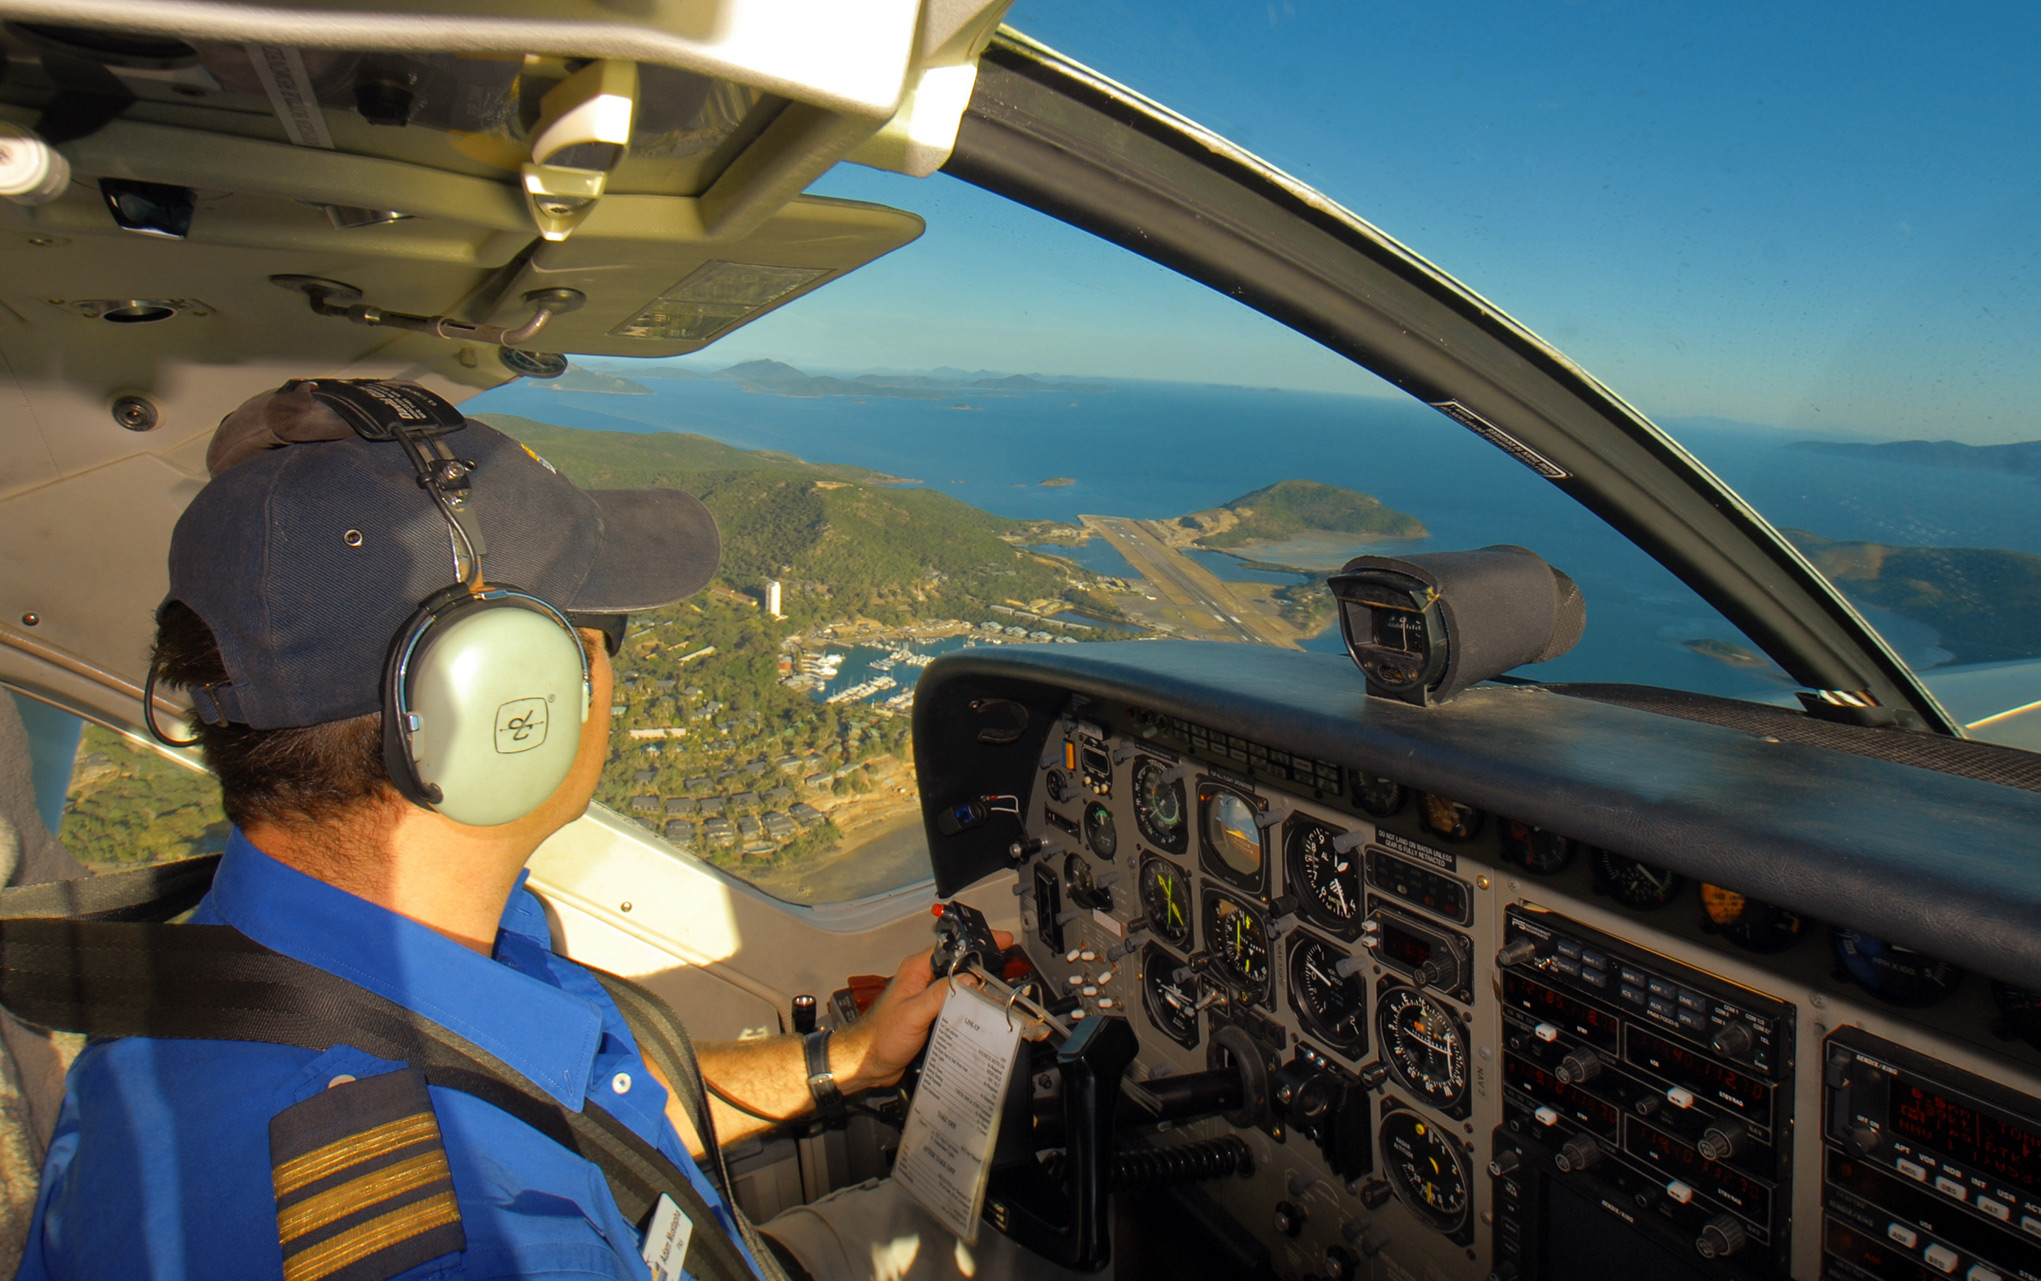 Banking for an approach to Hamilton Island in Queensland